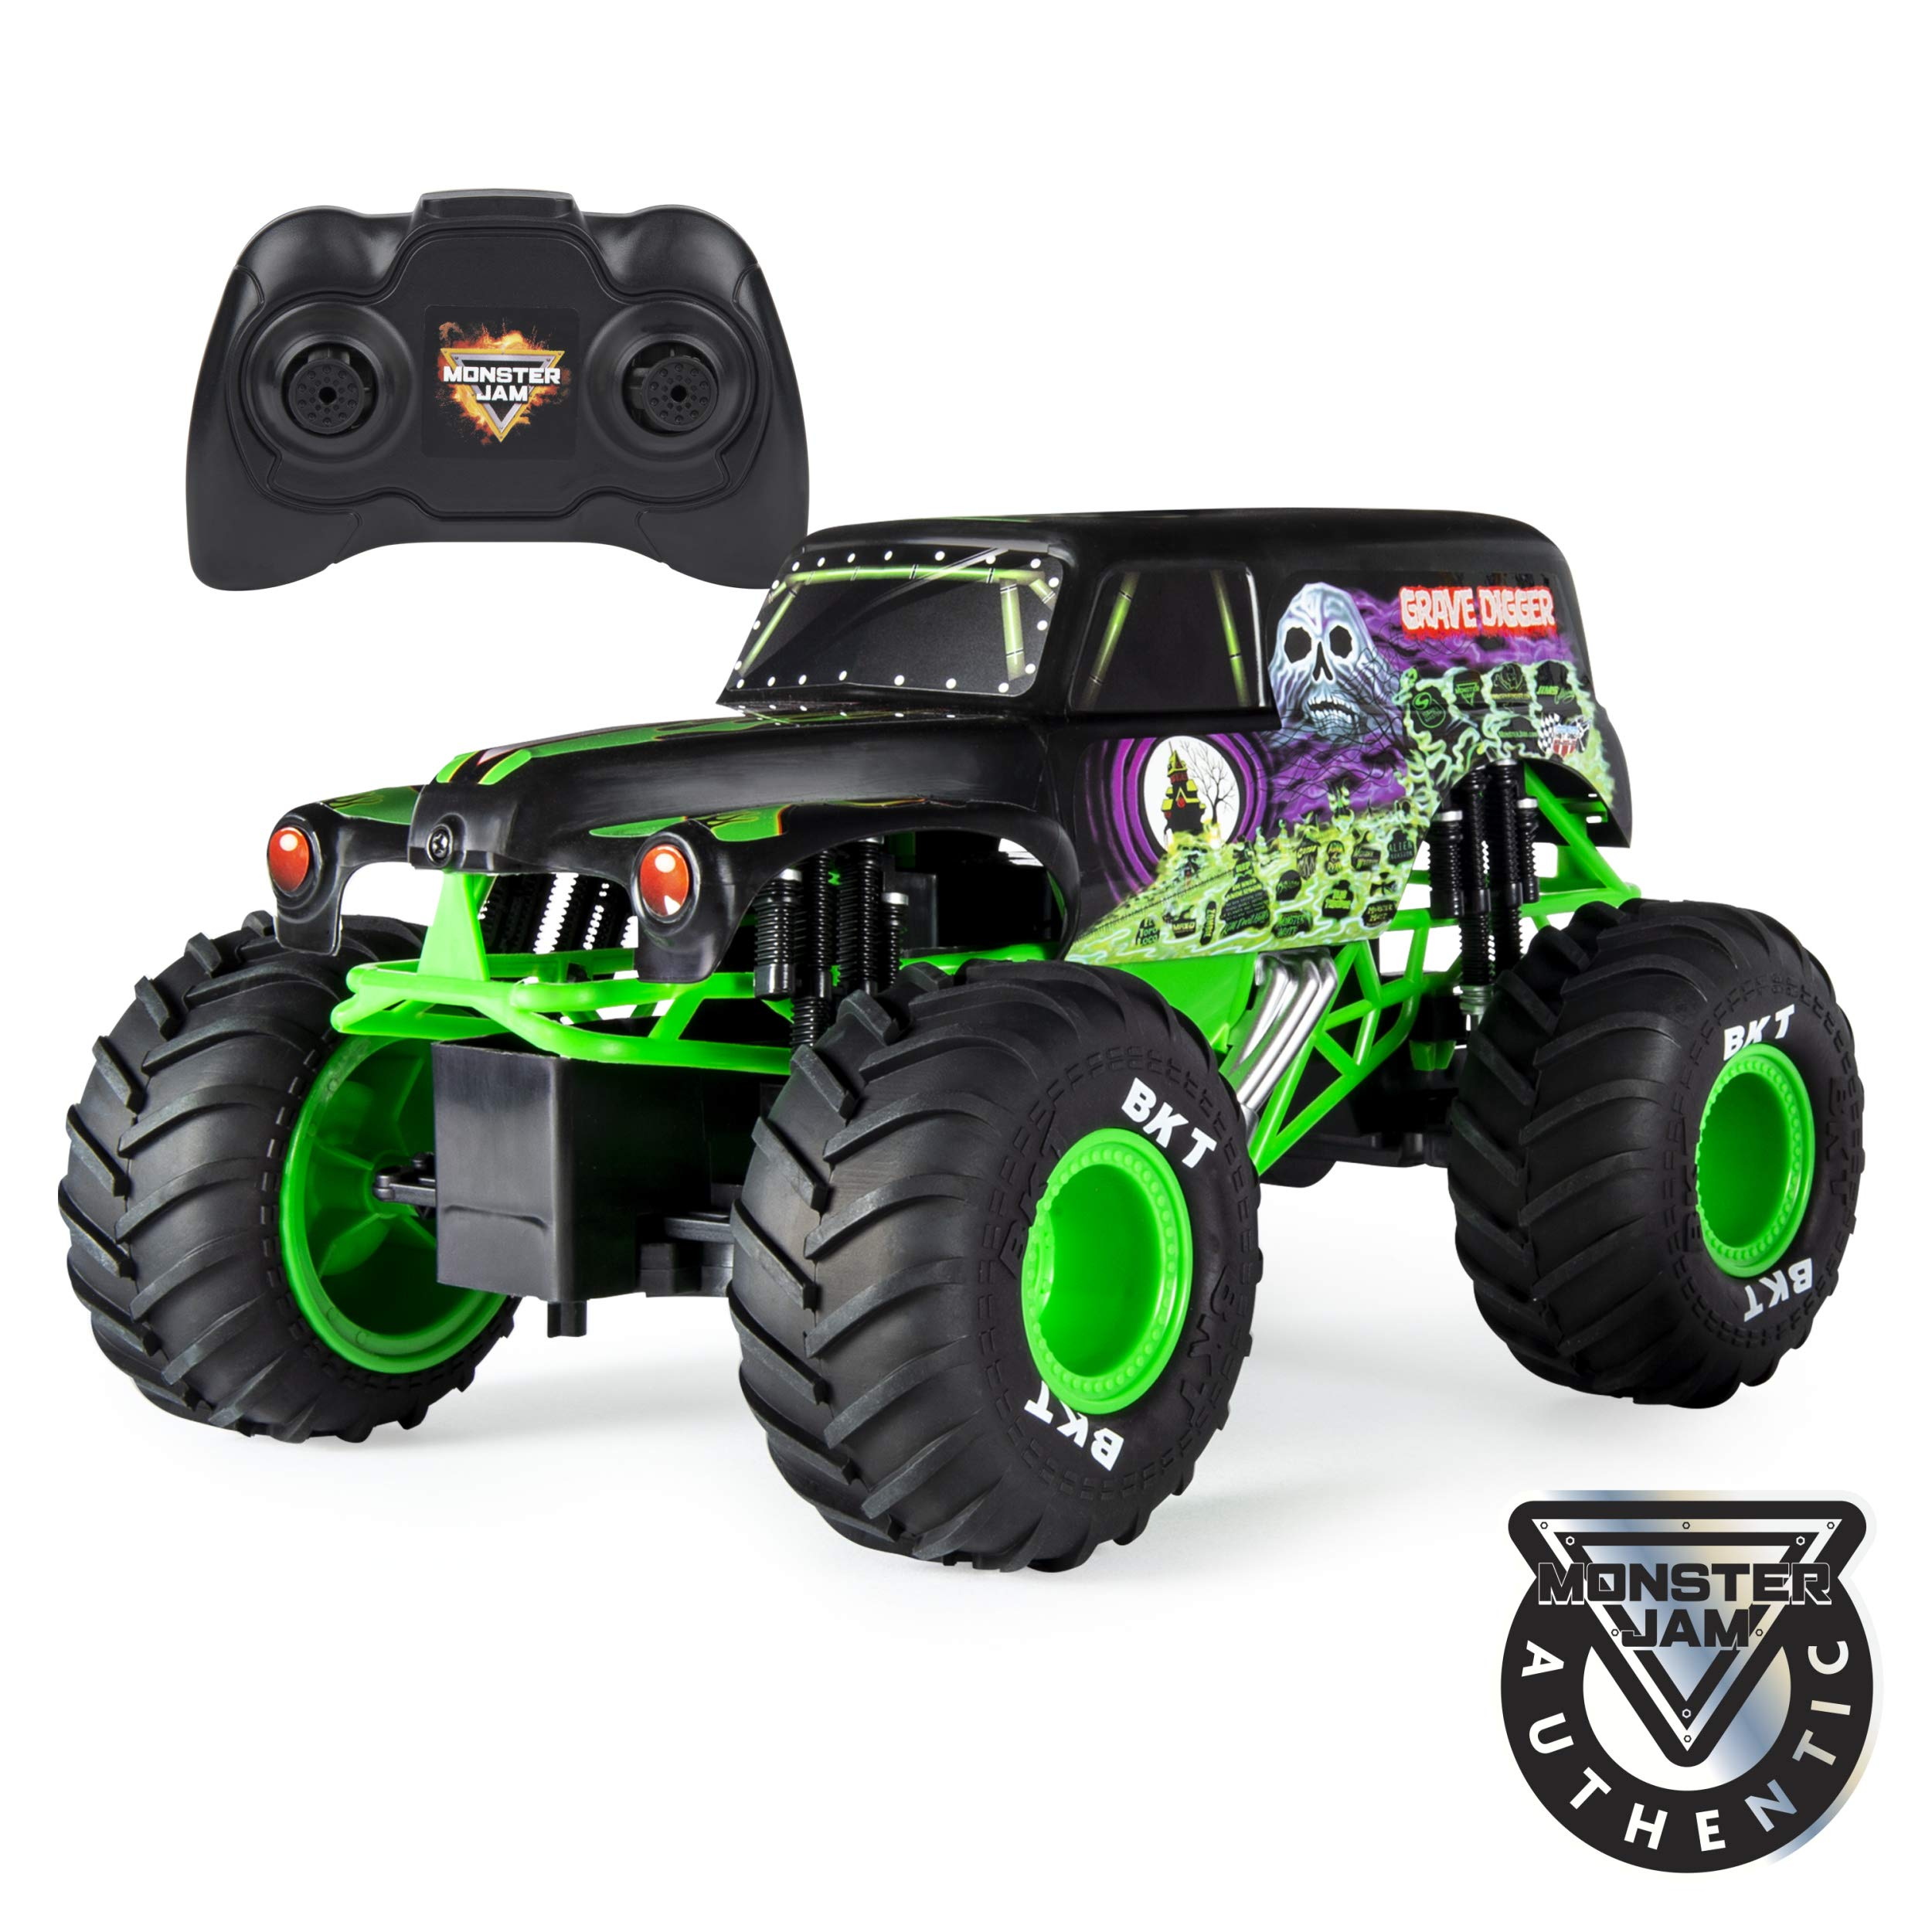 Monster Jam Official Grave Digger Remoter Control Monster Truck, 1: 15 Scale, 2.4Ghz